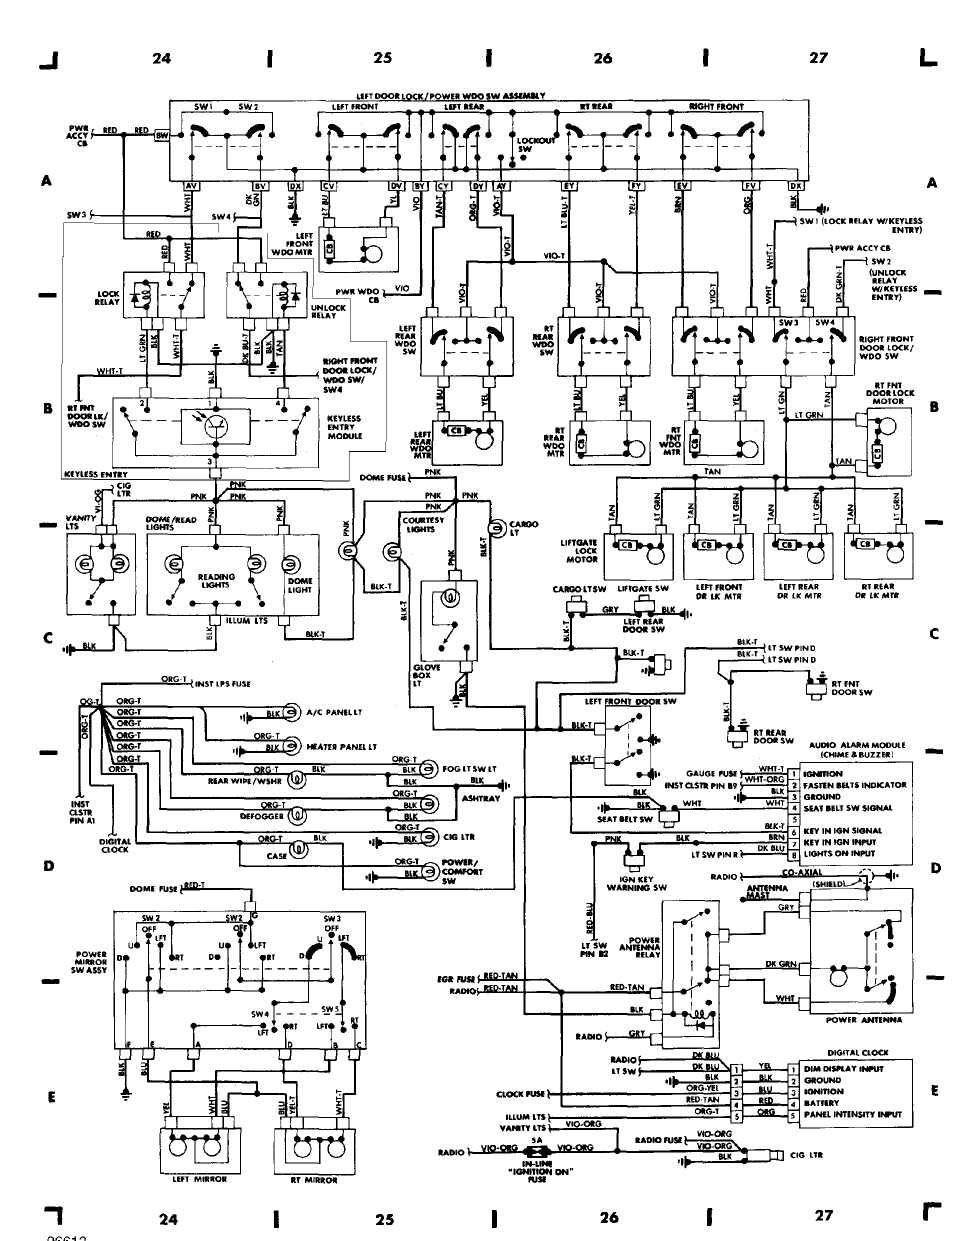 wiring_diagrams_html_61f5e0ad 2000 jeep xj wiring diagram 1998 jeep cherokee wiring diagrams pdf 2000 jeep grand cherokee fuse box diagram at edmiracle.co